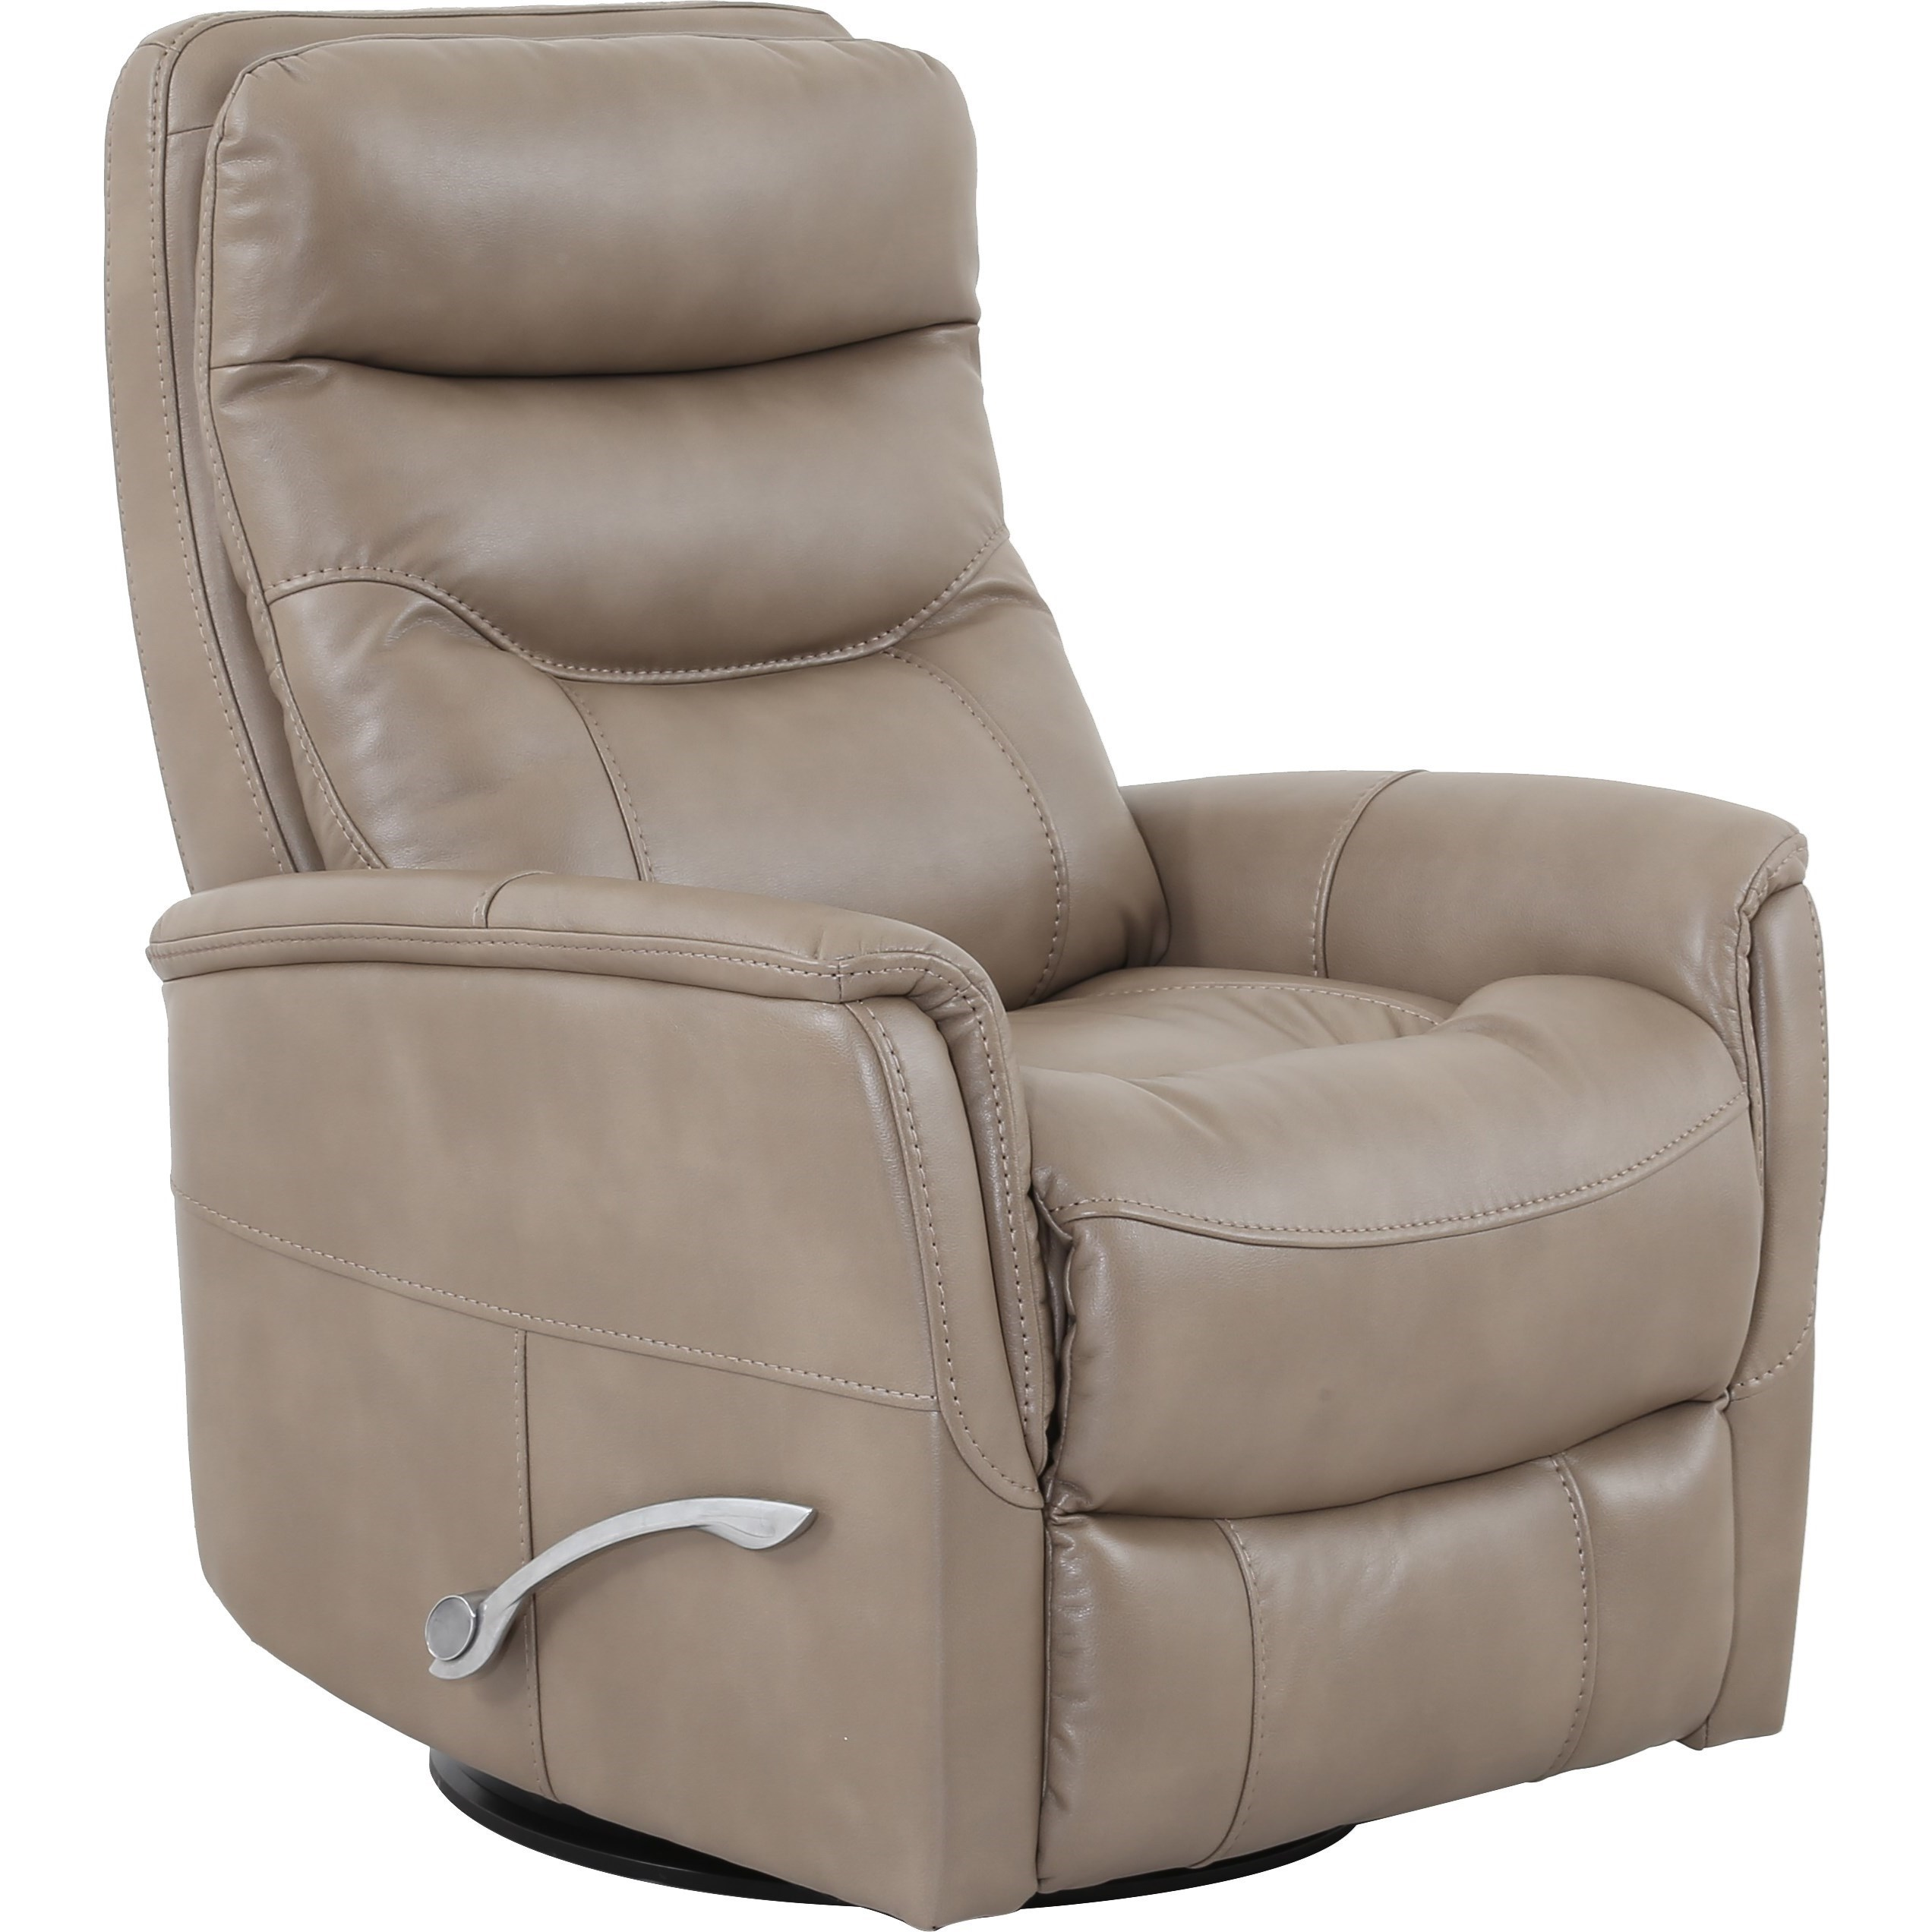 Parker Living Gemini Contemporary Swivel Glider Recliner with Padded Arms  sc 1 st  Wilcox Furniture & Contemporary Swivel Glider Recliner with Padded Arms - Gemini by ... islam-shia.org